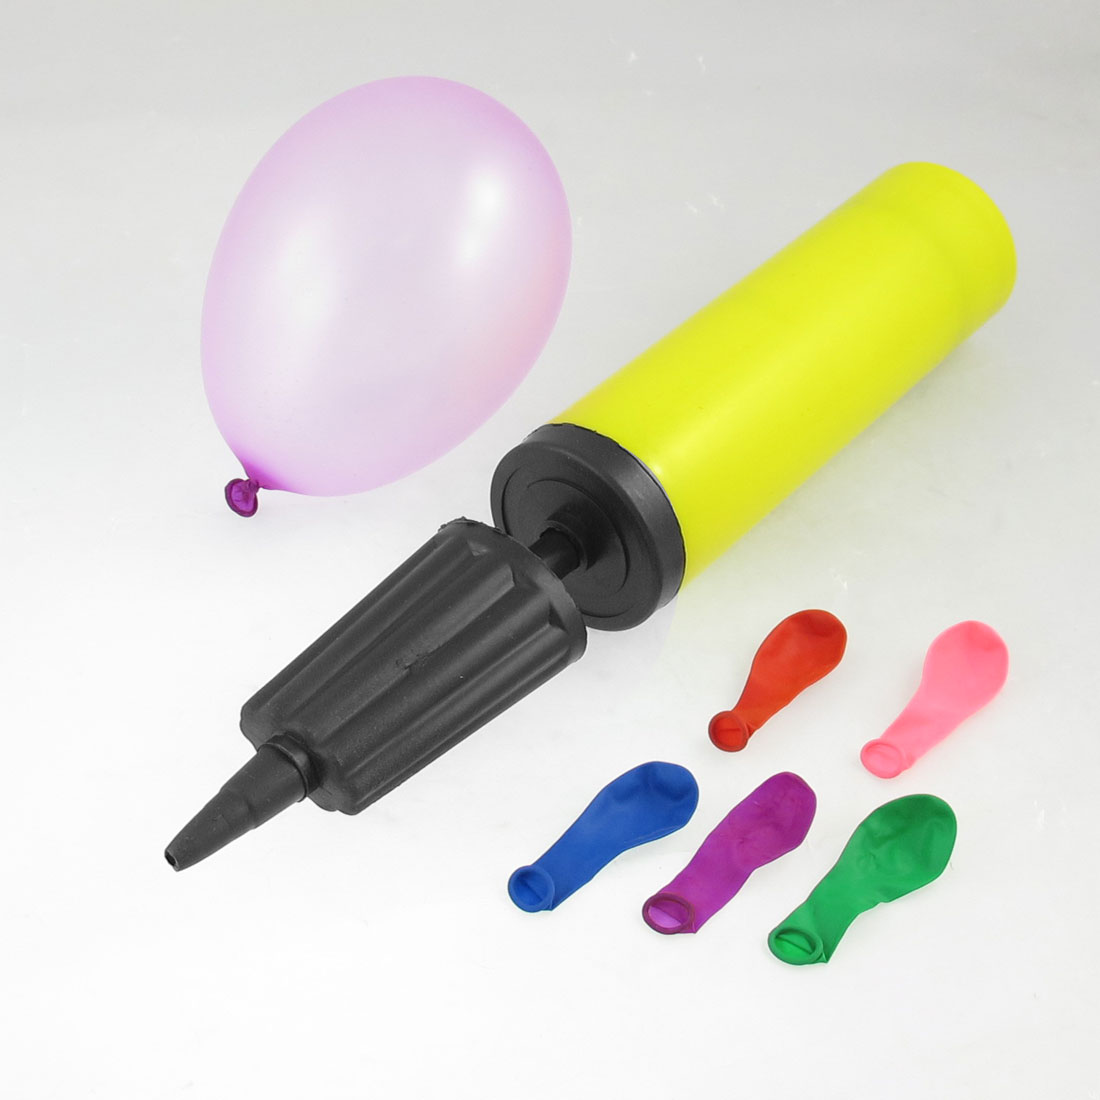 100 Pcs Assorted Color Latex Balloons + Air Pump Inflator Black Yellow